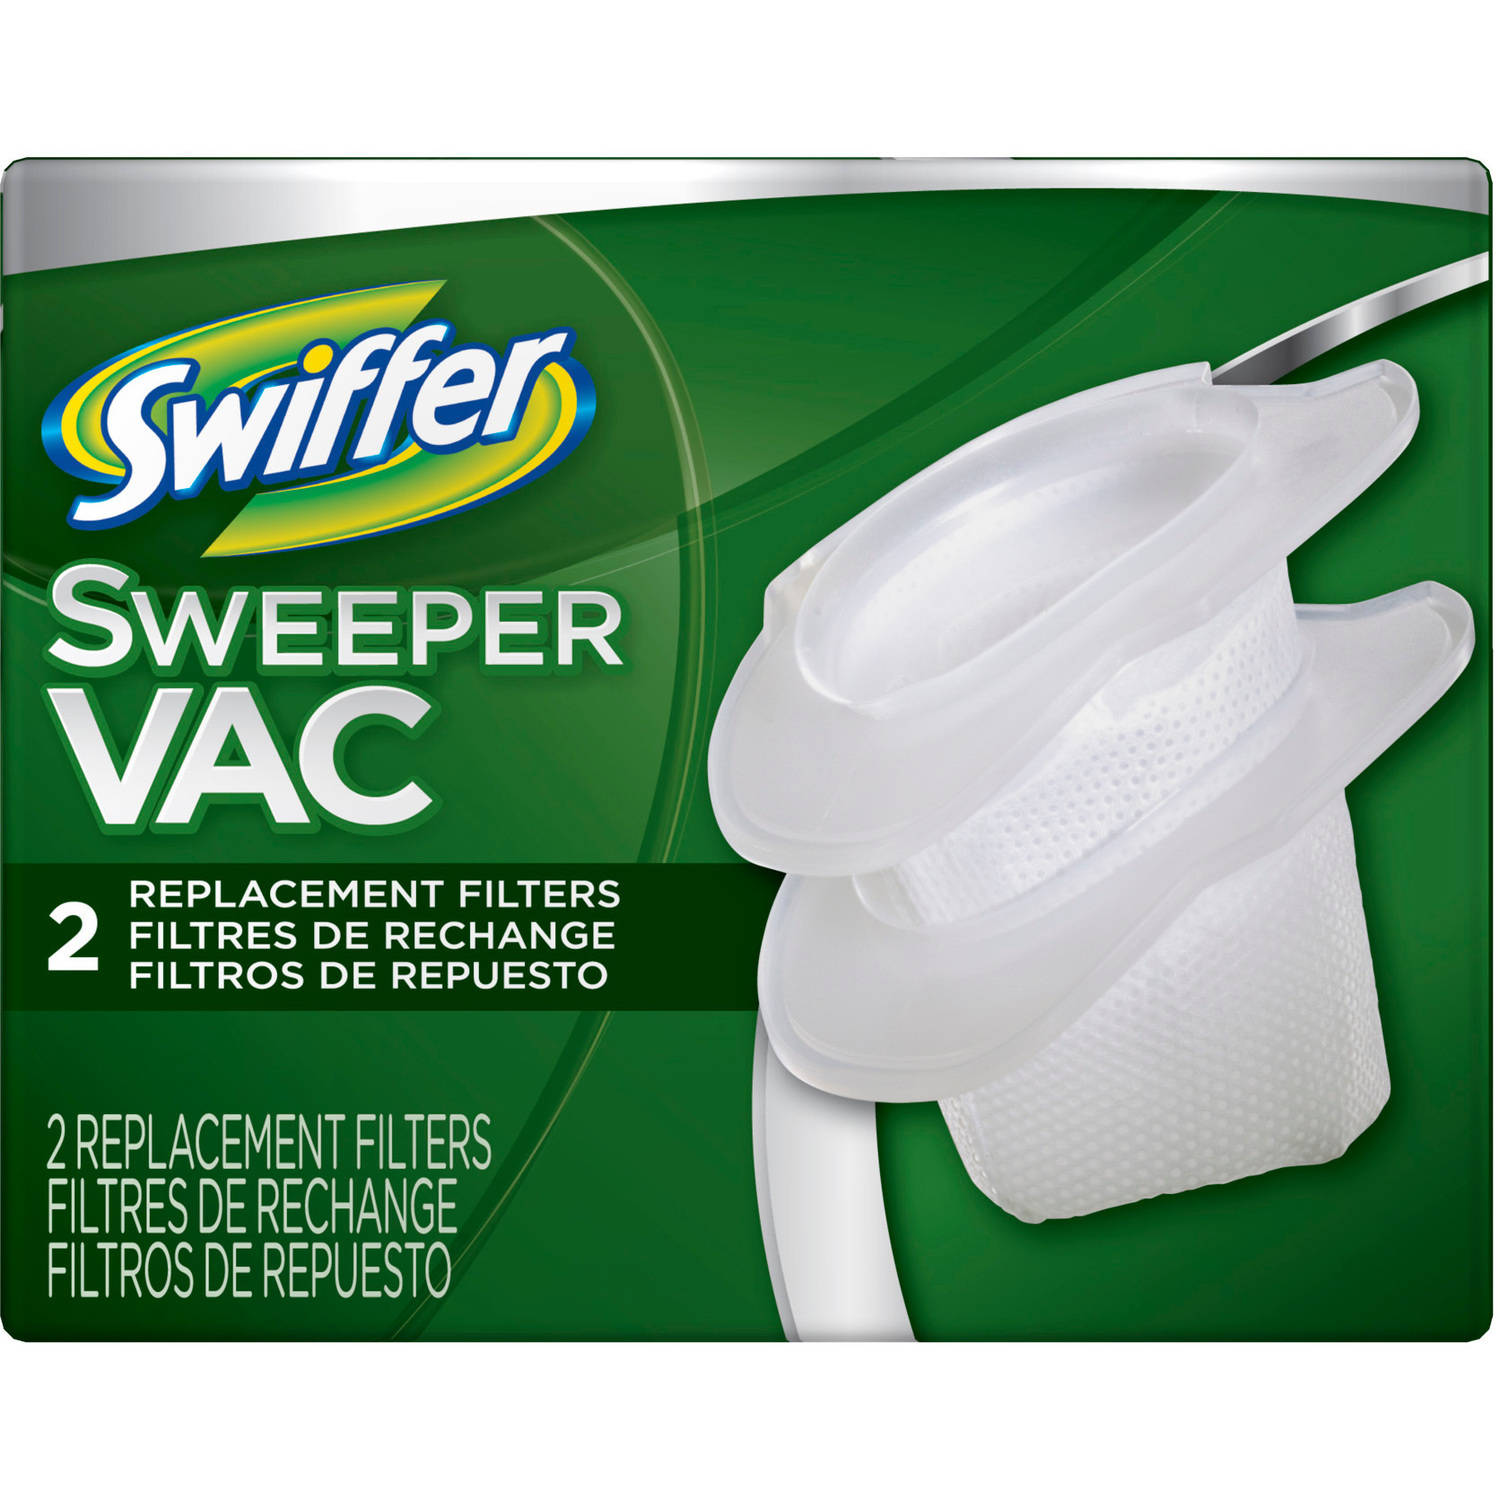 Swiffer SweeperVac Vacuum Replacement Filter, 2 count